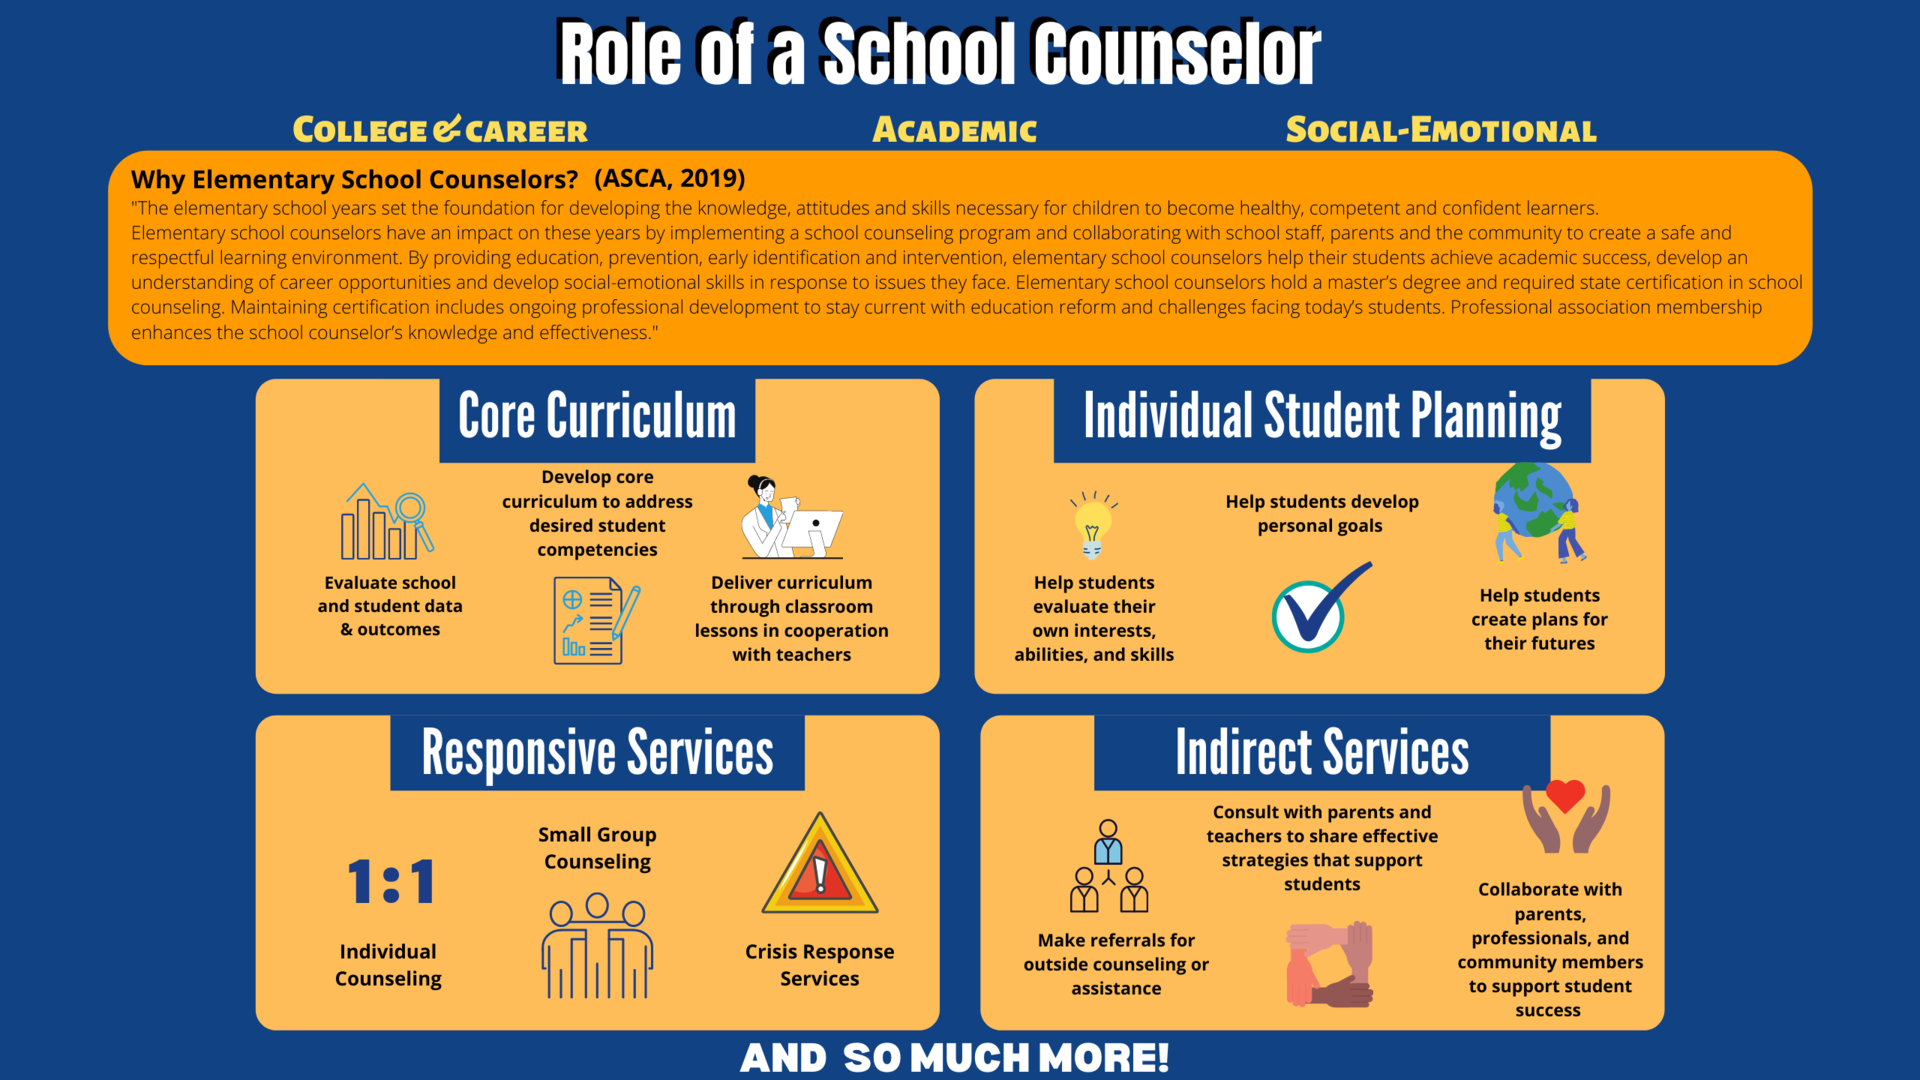 Role of a School Counselor